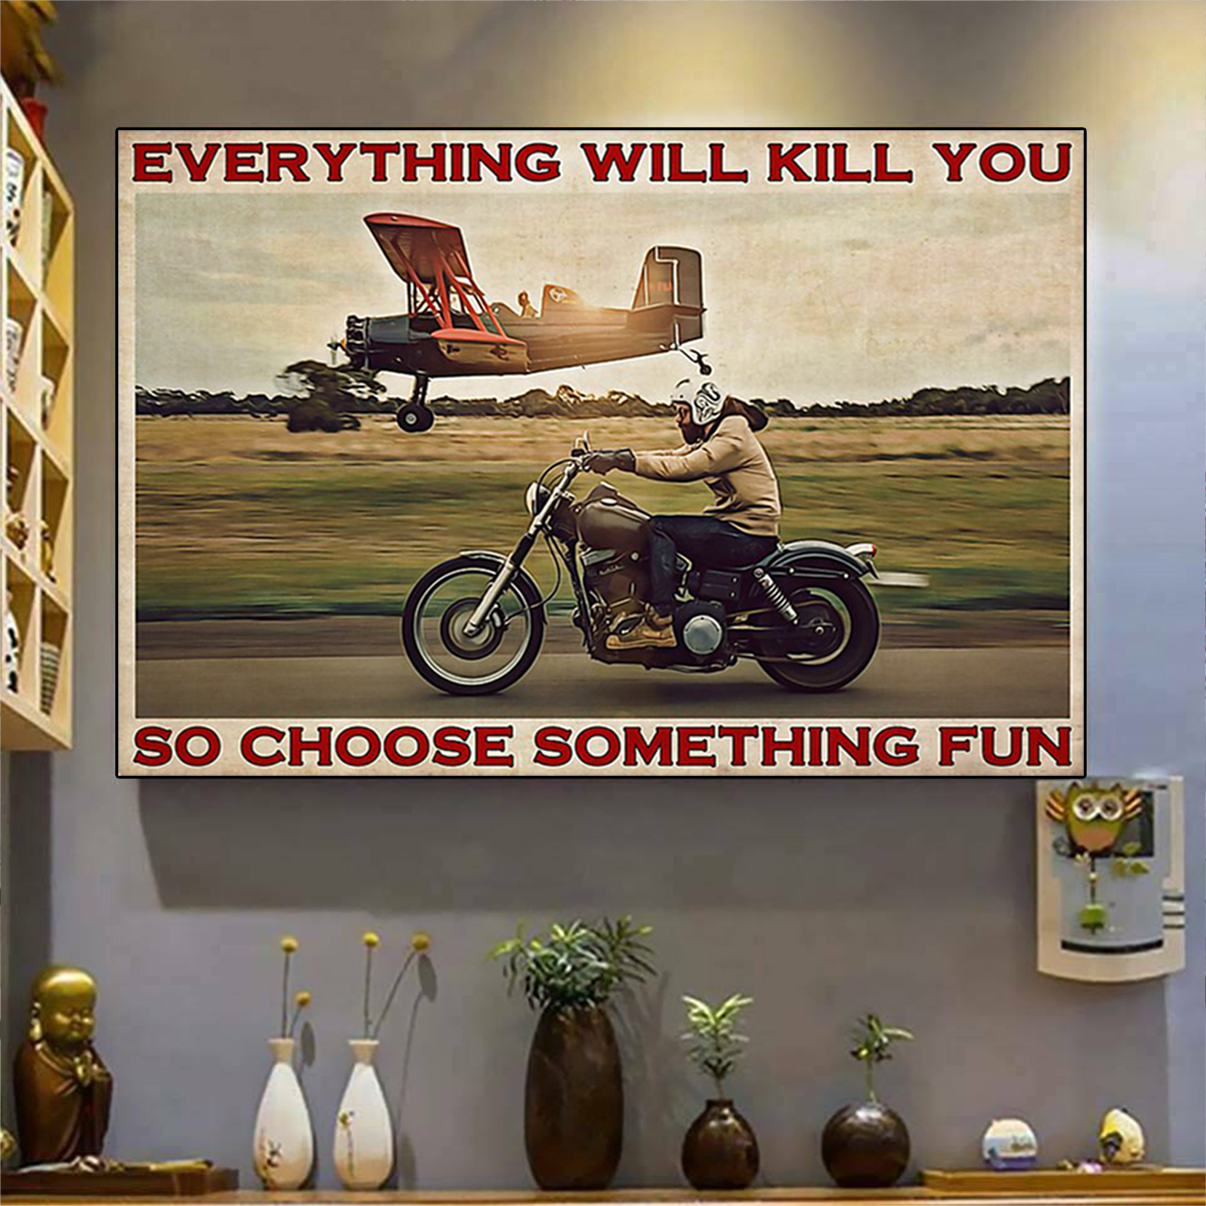 Motorbike and airplane everything will kill you so choose something fun poster